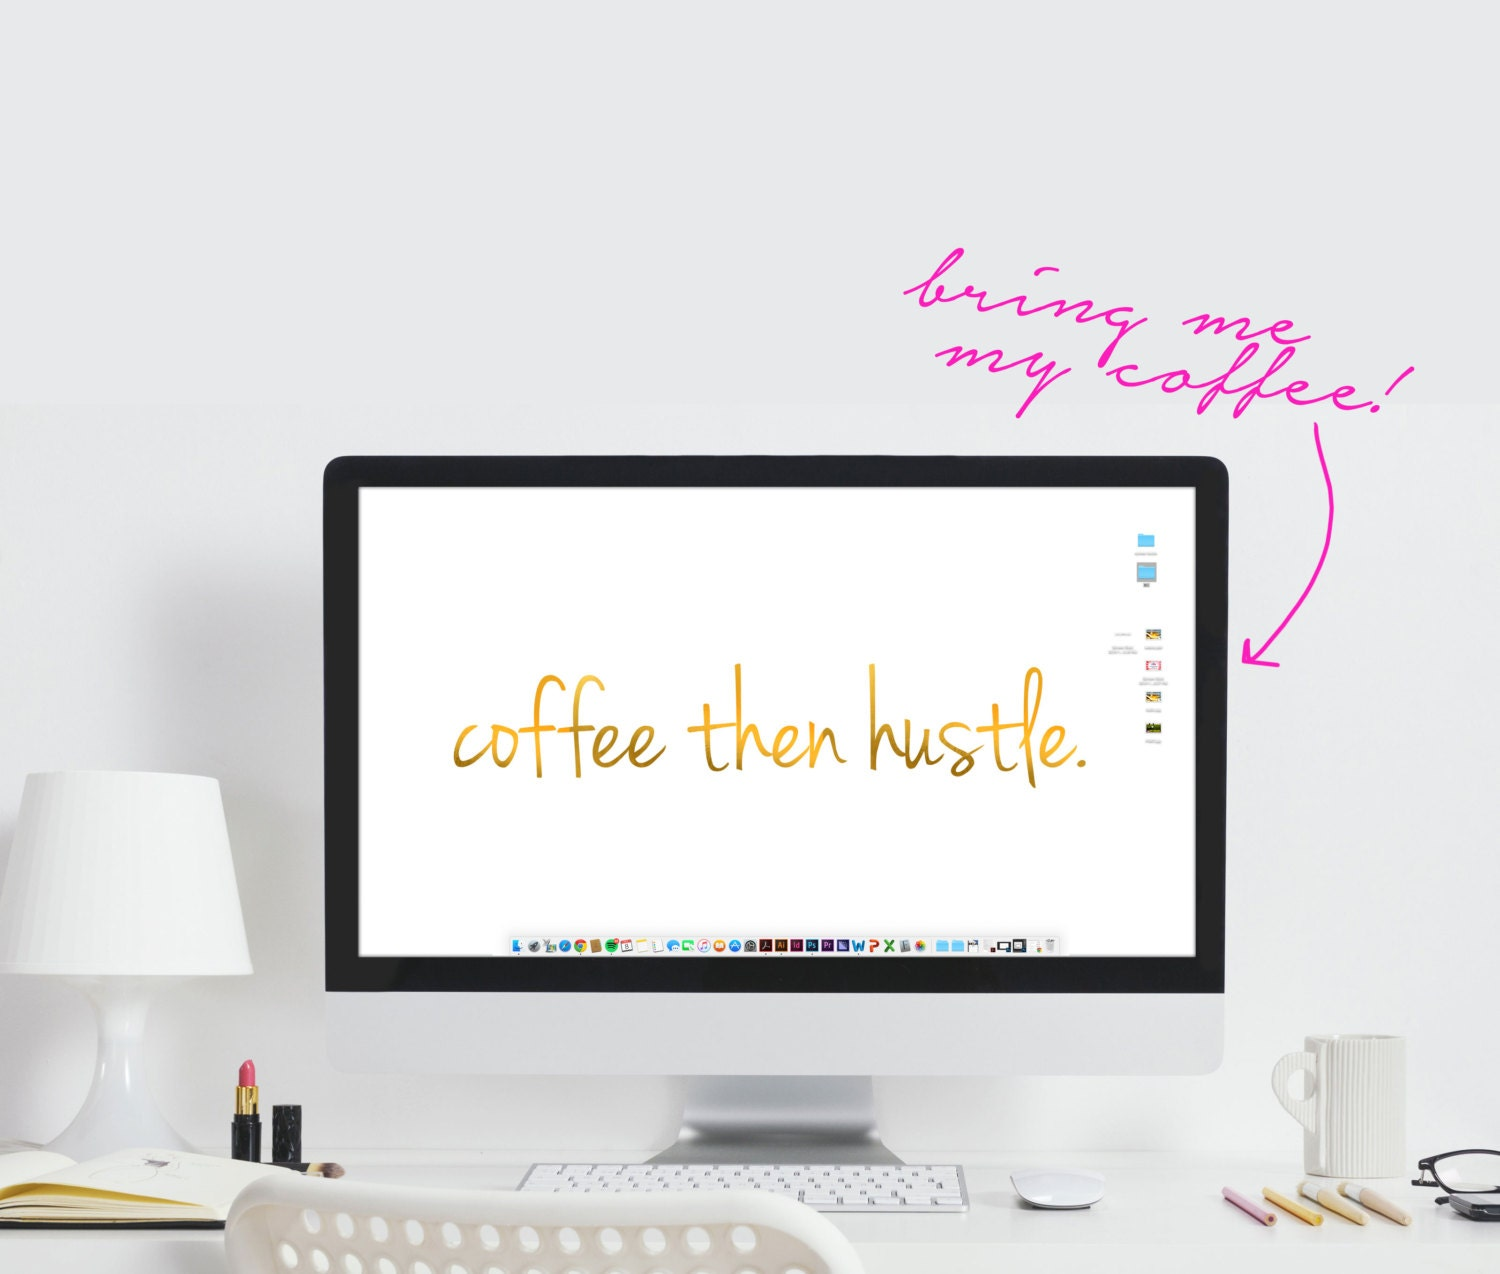 Computer Wallpaper Quotes: Hustle Computer Wallpaper Coffee Then Hustle Quote